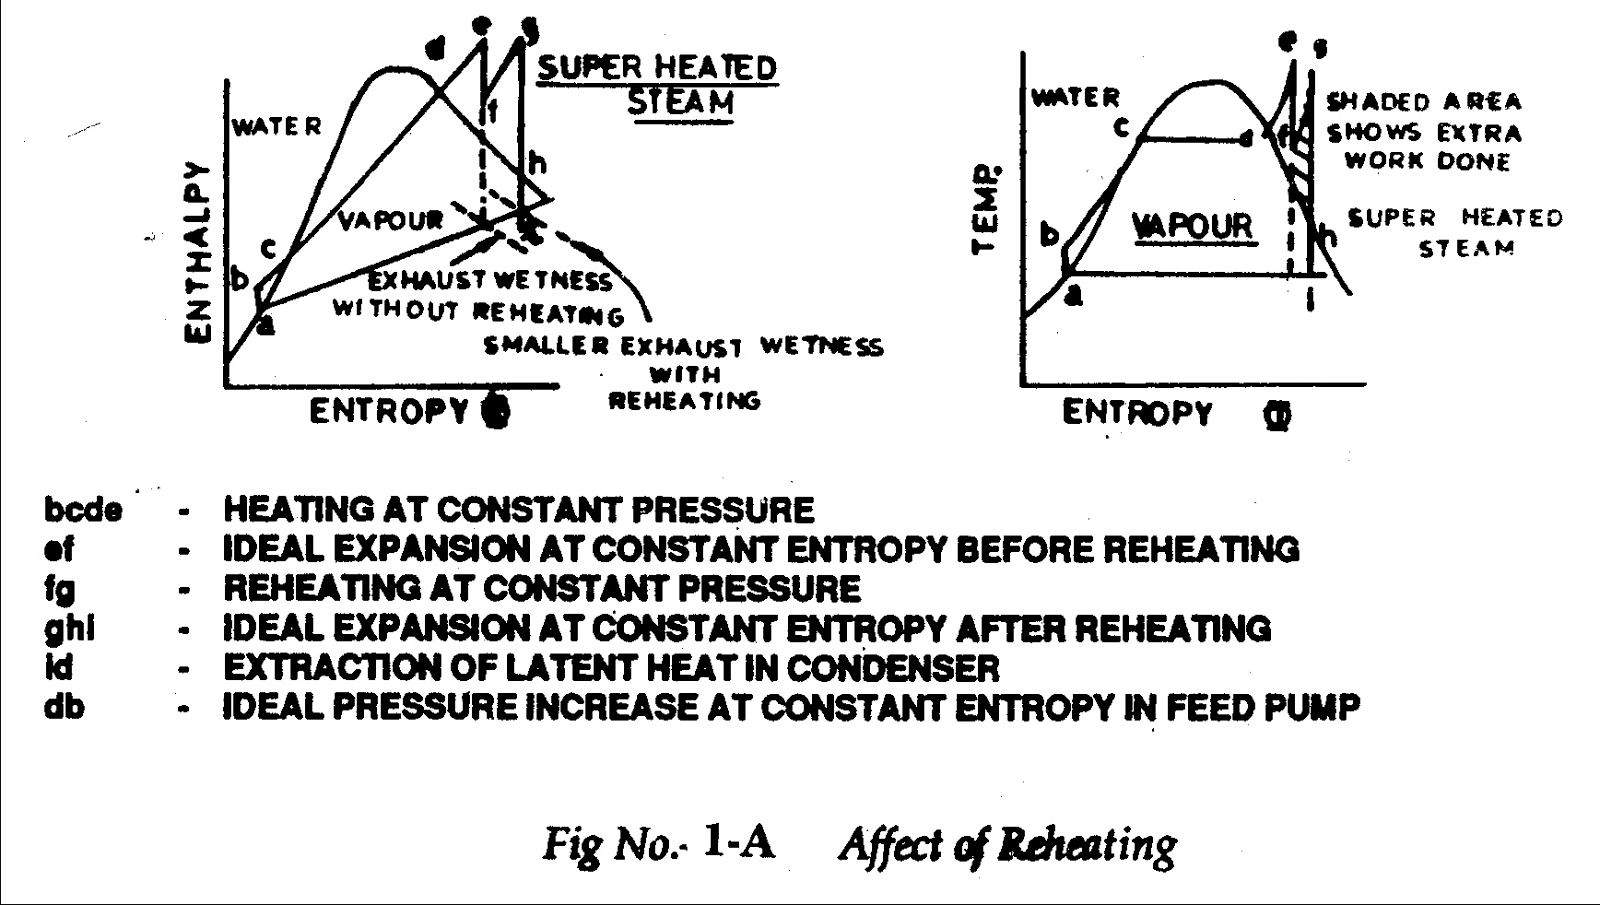 hight resolution of heating and reheating of steam figure 1a shows this cycle and is self explanatory